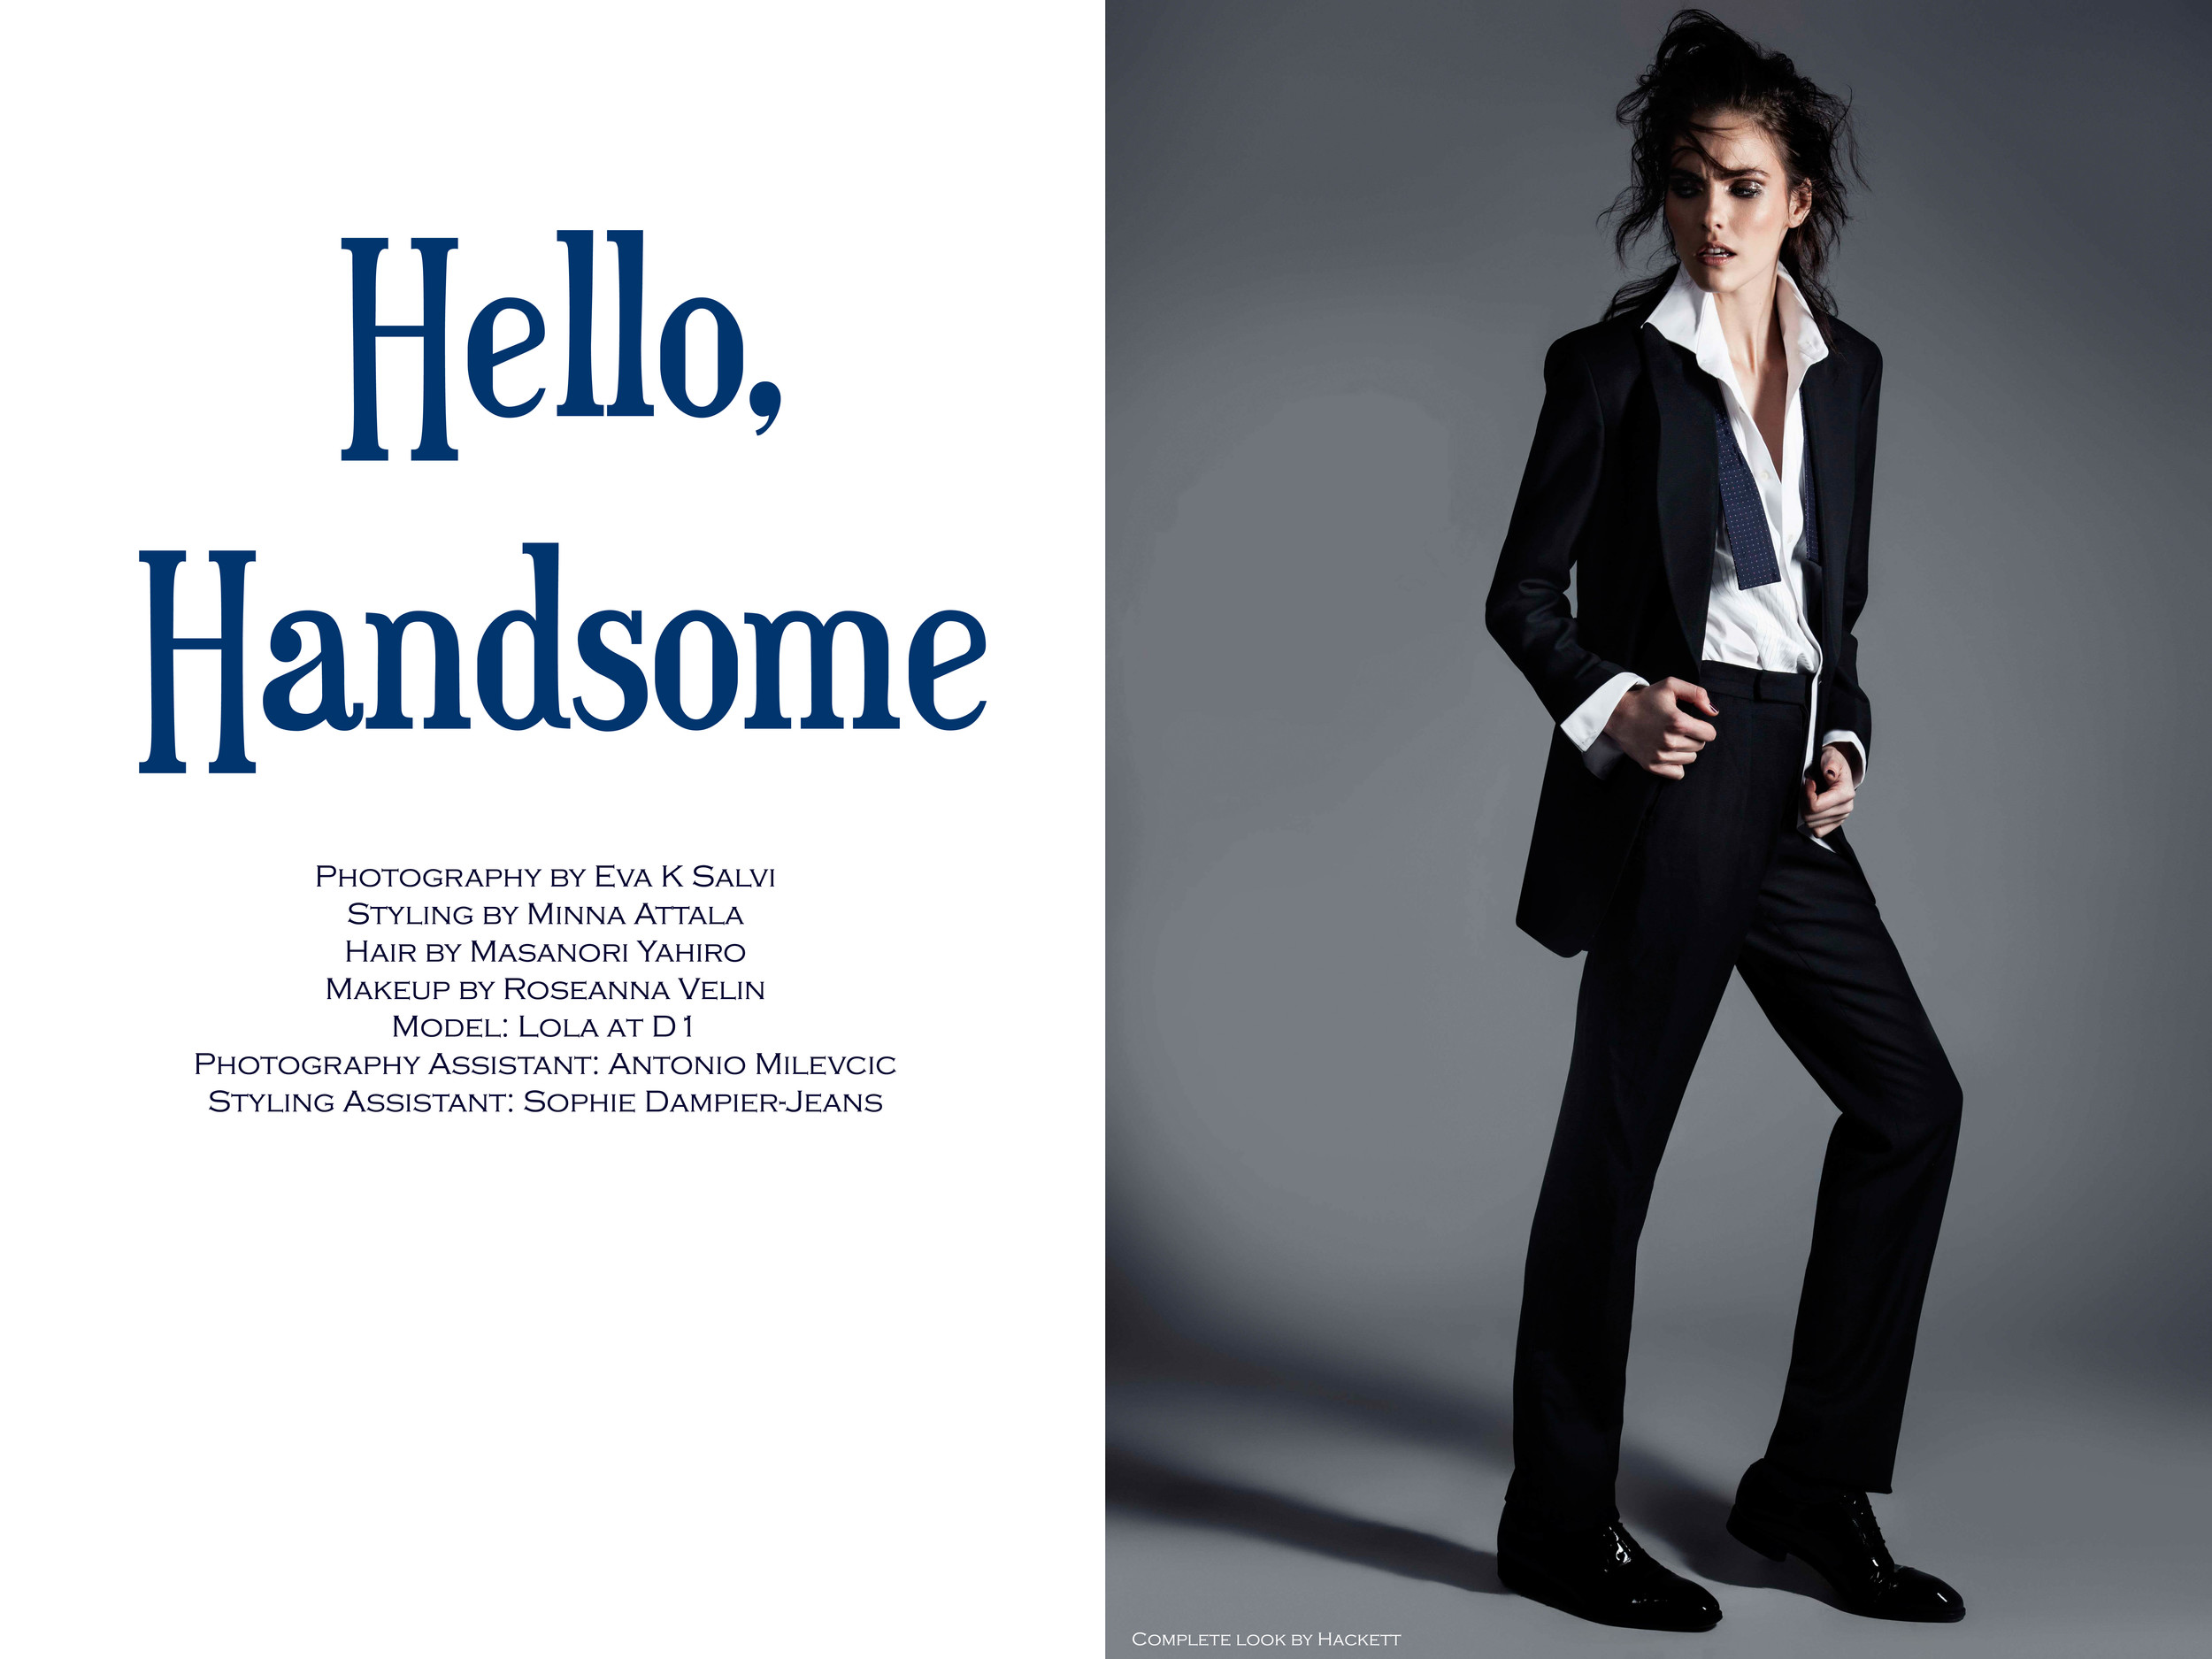 p1 Hello Handsome.jpg